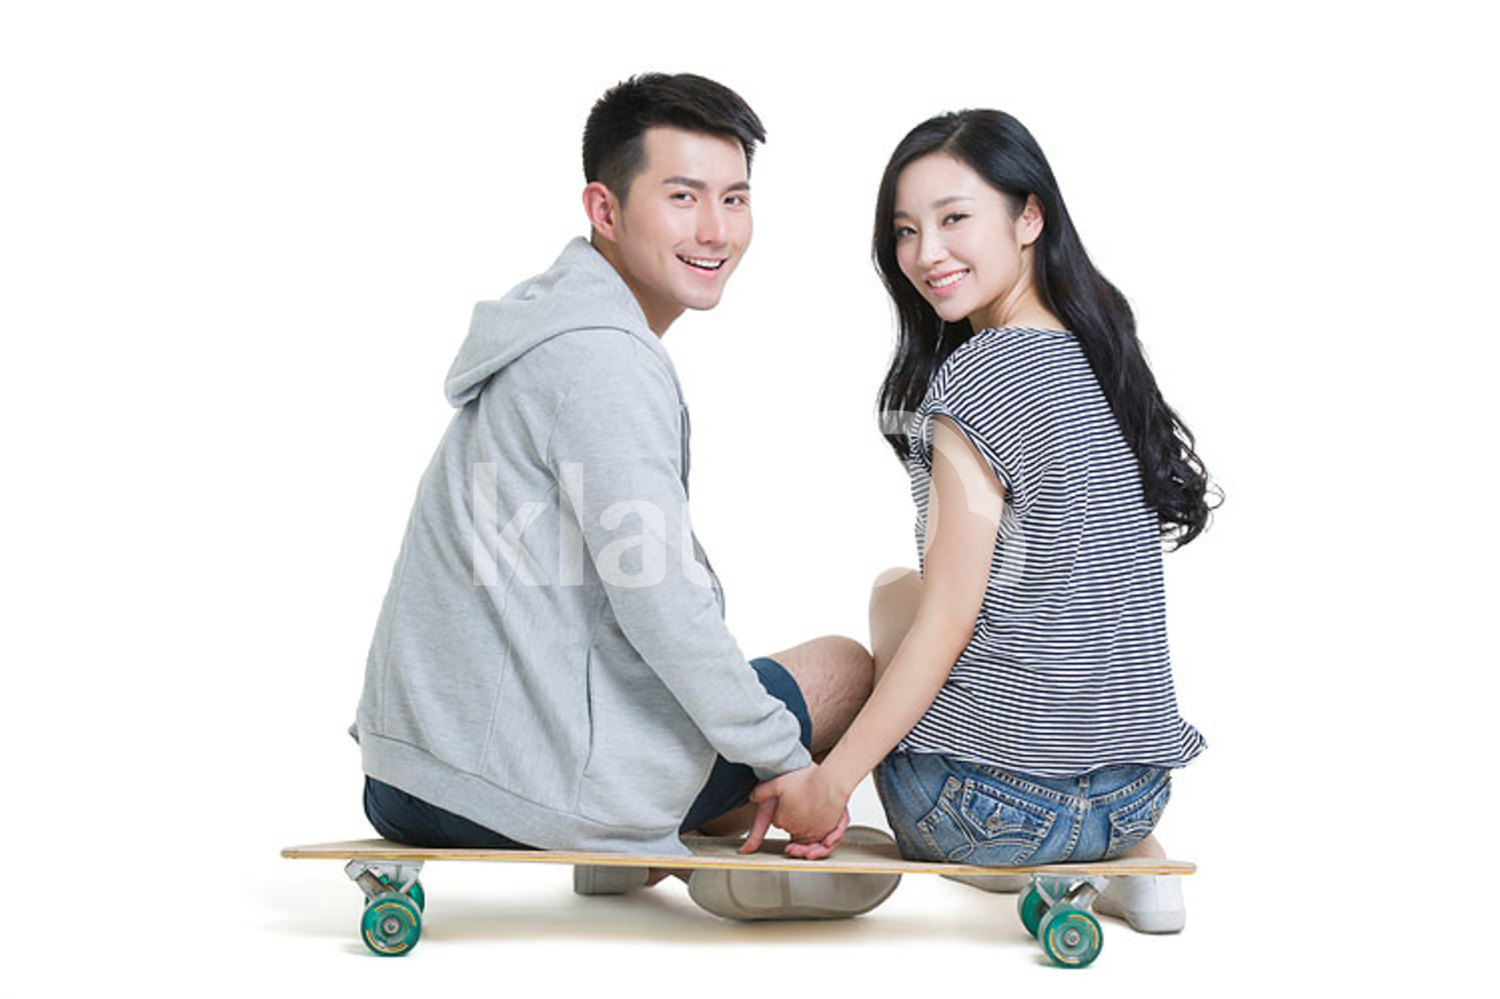 Happy young Chinese couple sitting on a skateboard